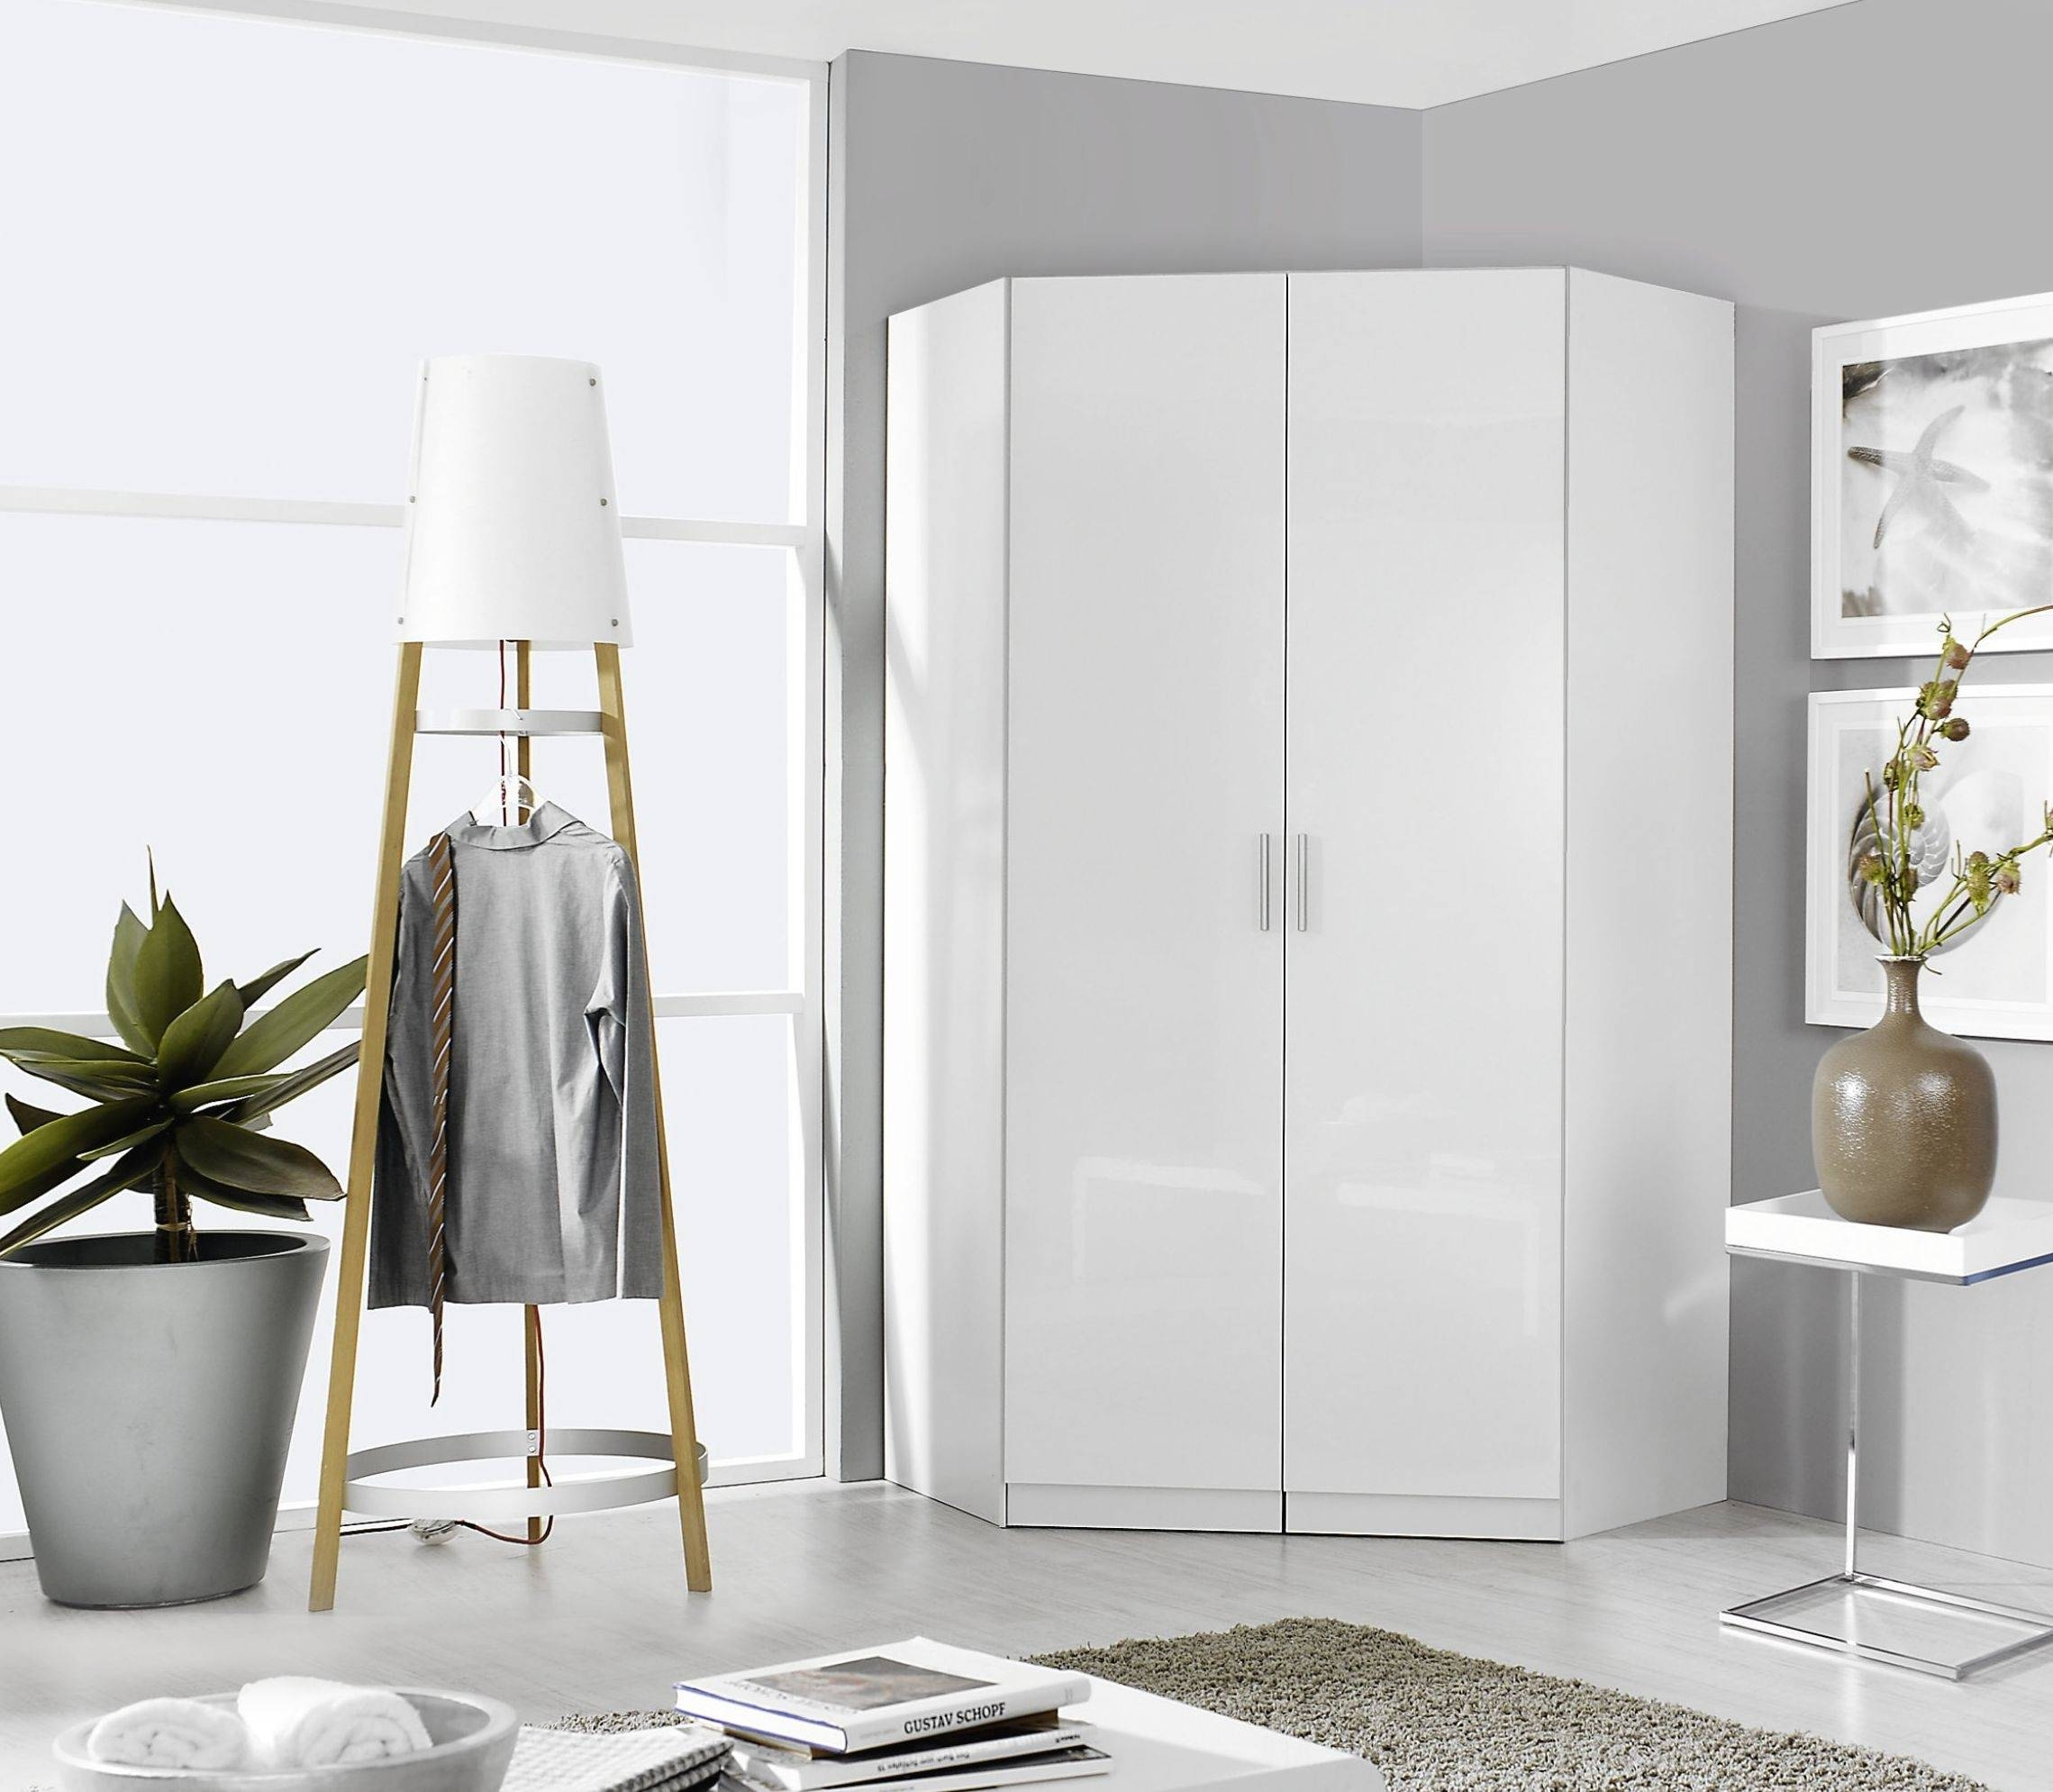 Buy Rauch Celle Corner Wardrobe Online - Cfs Uk regarding White Corner Wardrobes (Image 1 of 15)